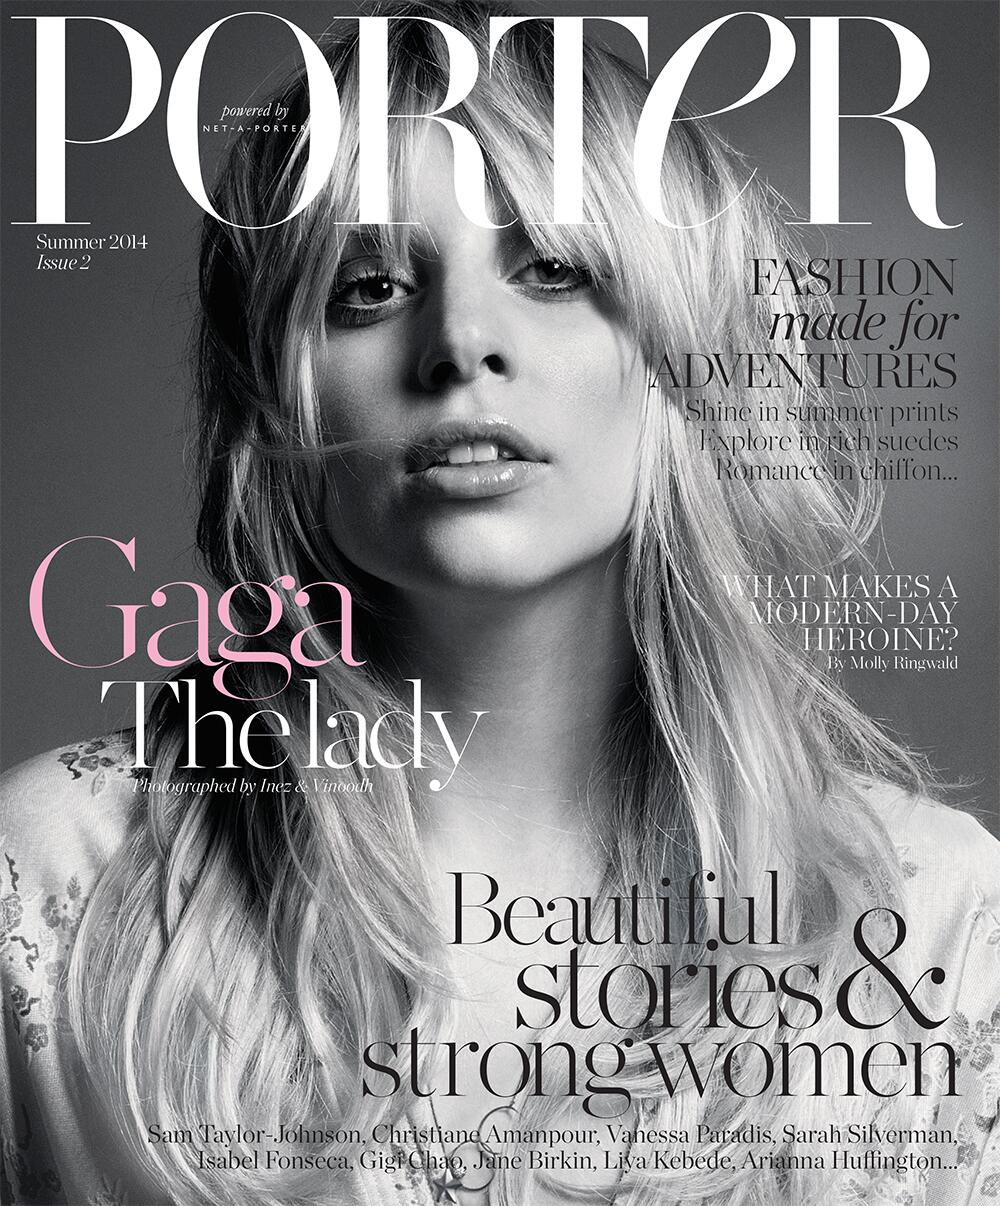 lady-gaga-by-inez-van-lamsweerde-vinoodh-matadin-for-porter-summer-2014